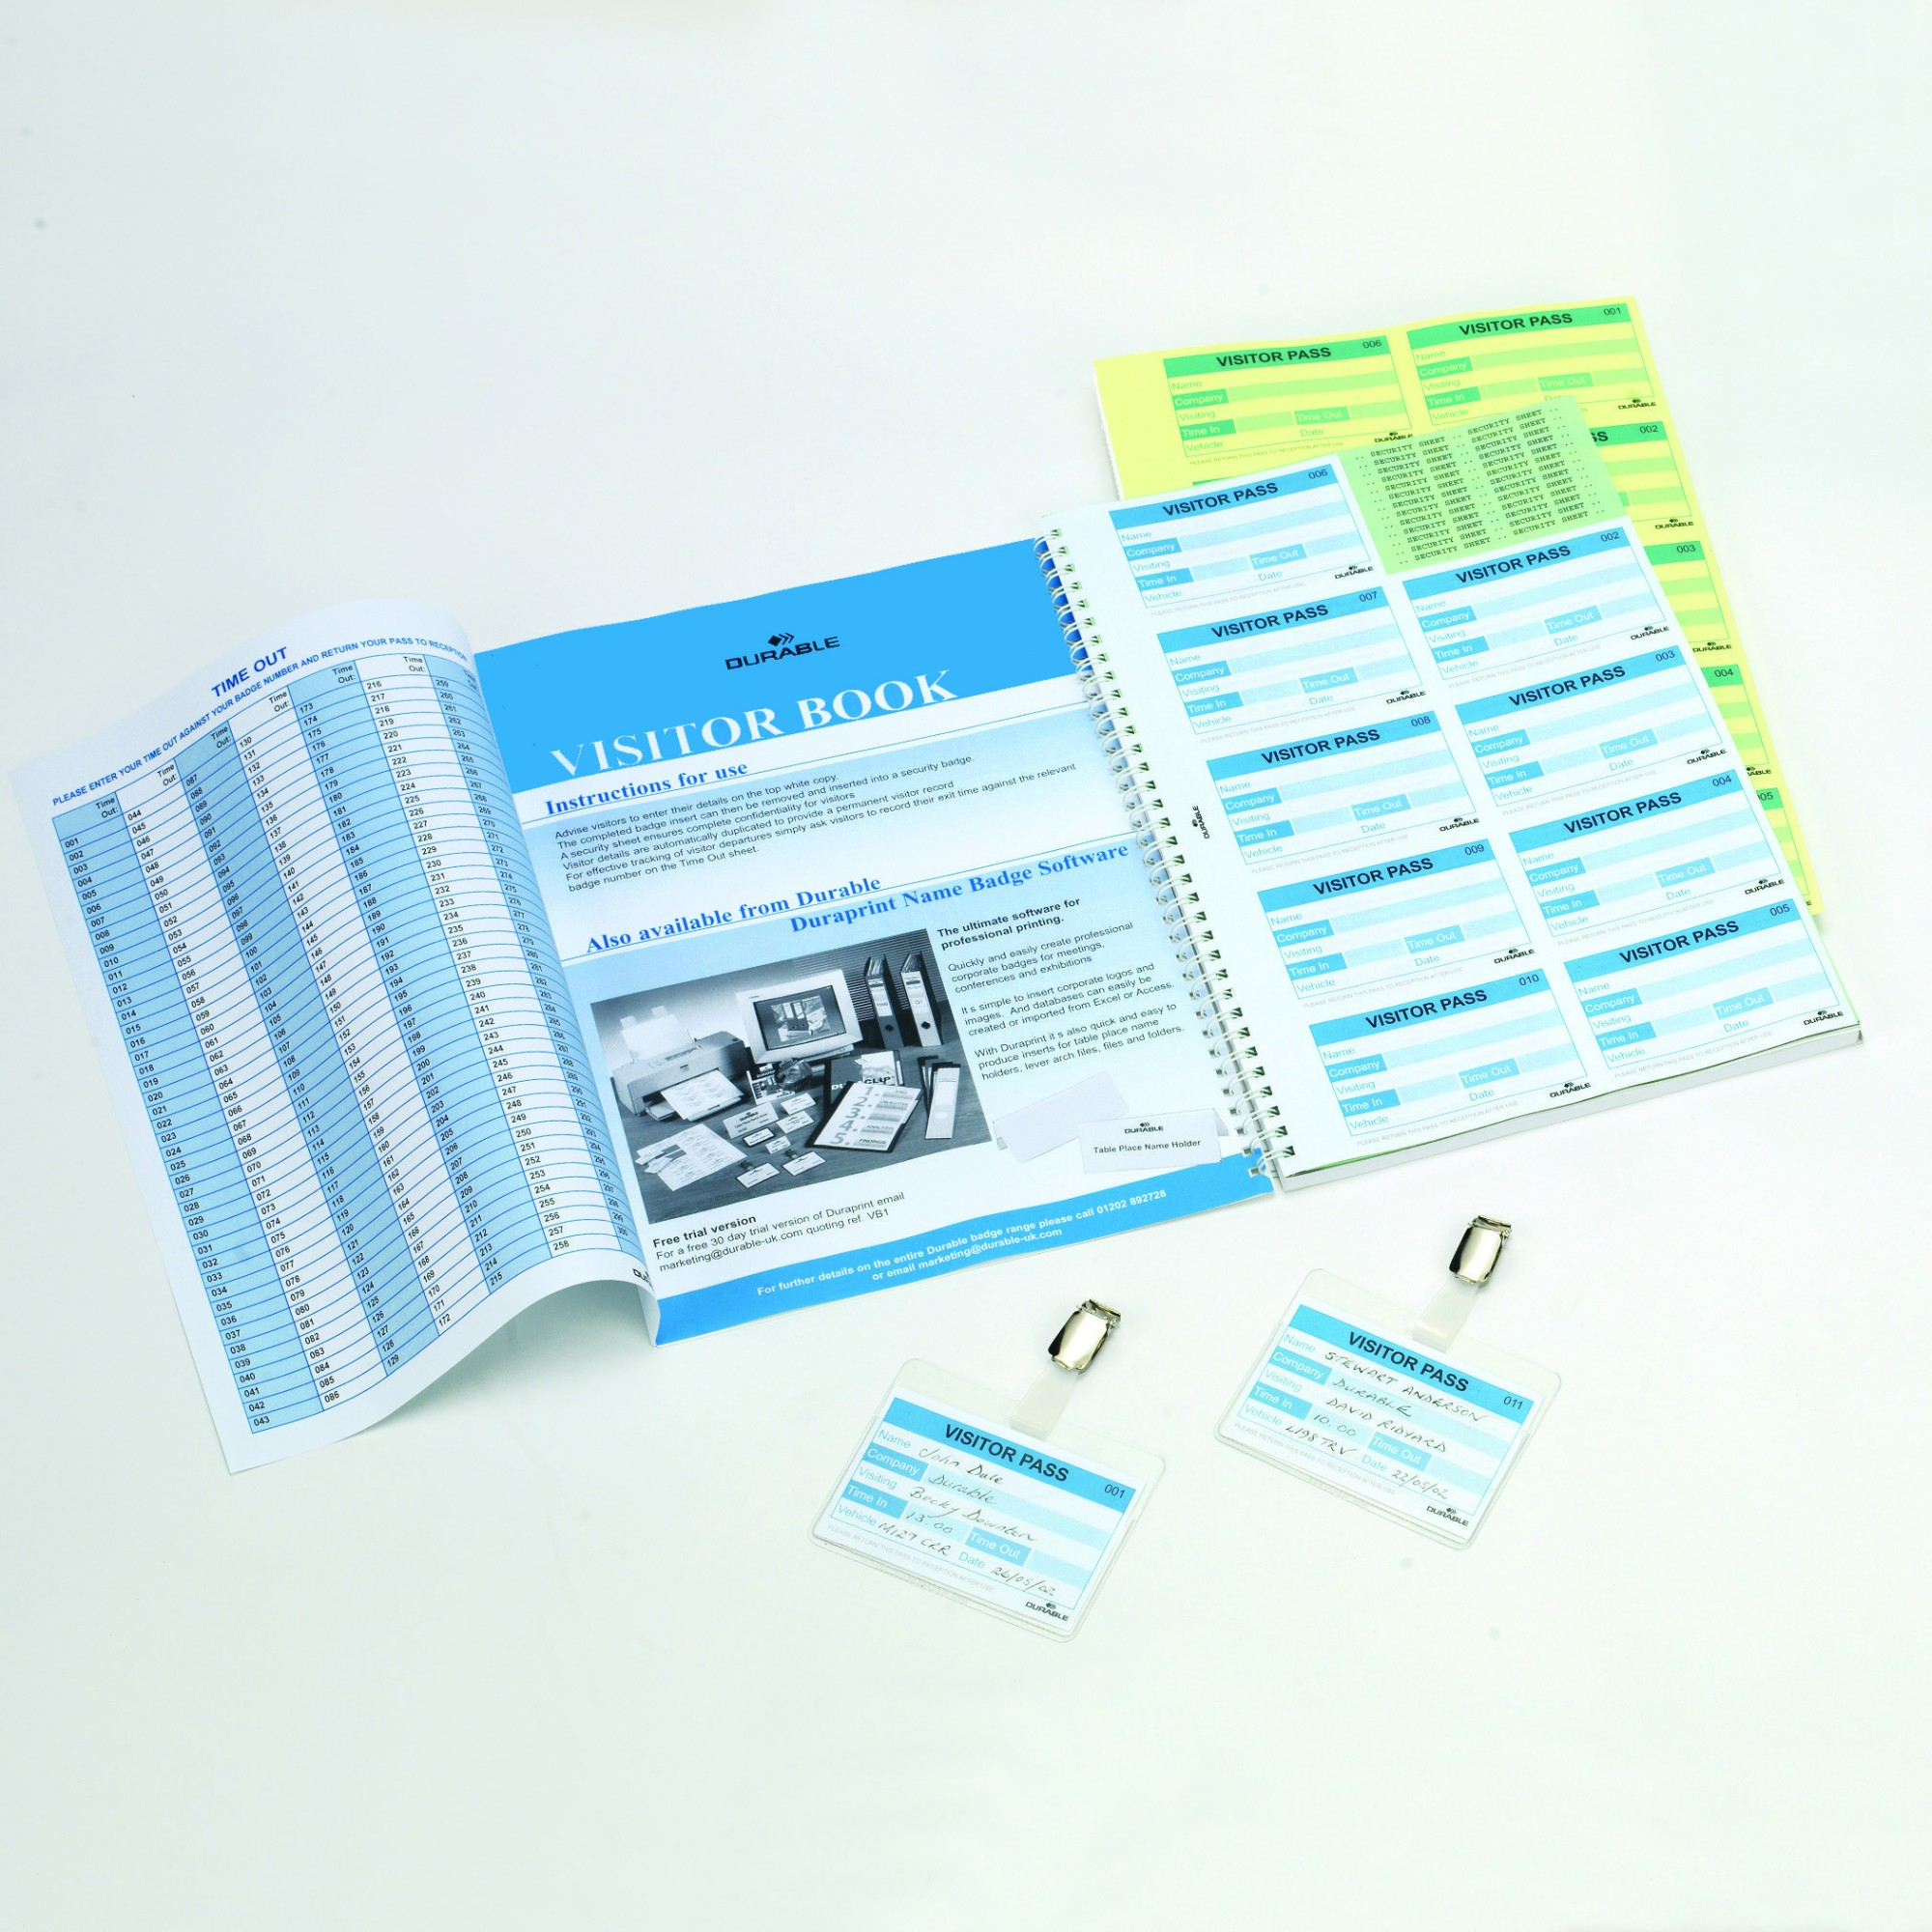 Durable Visitor Book 100 Badge Refill 60x90mm 146465